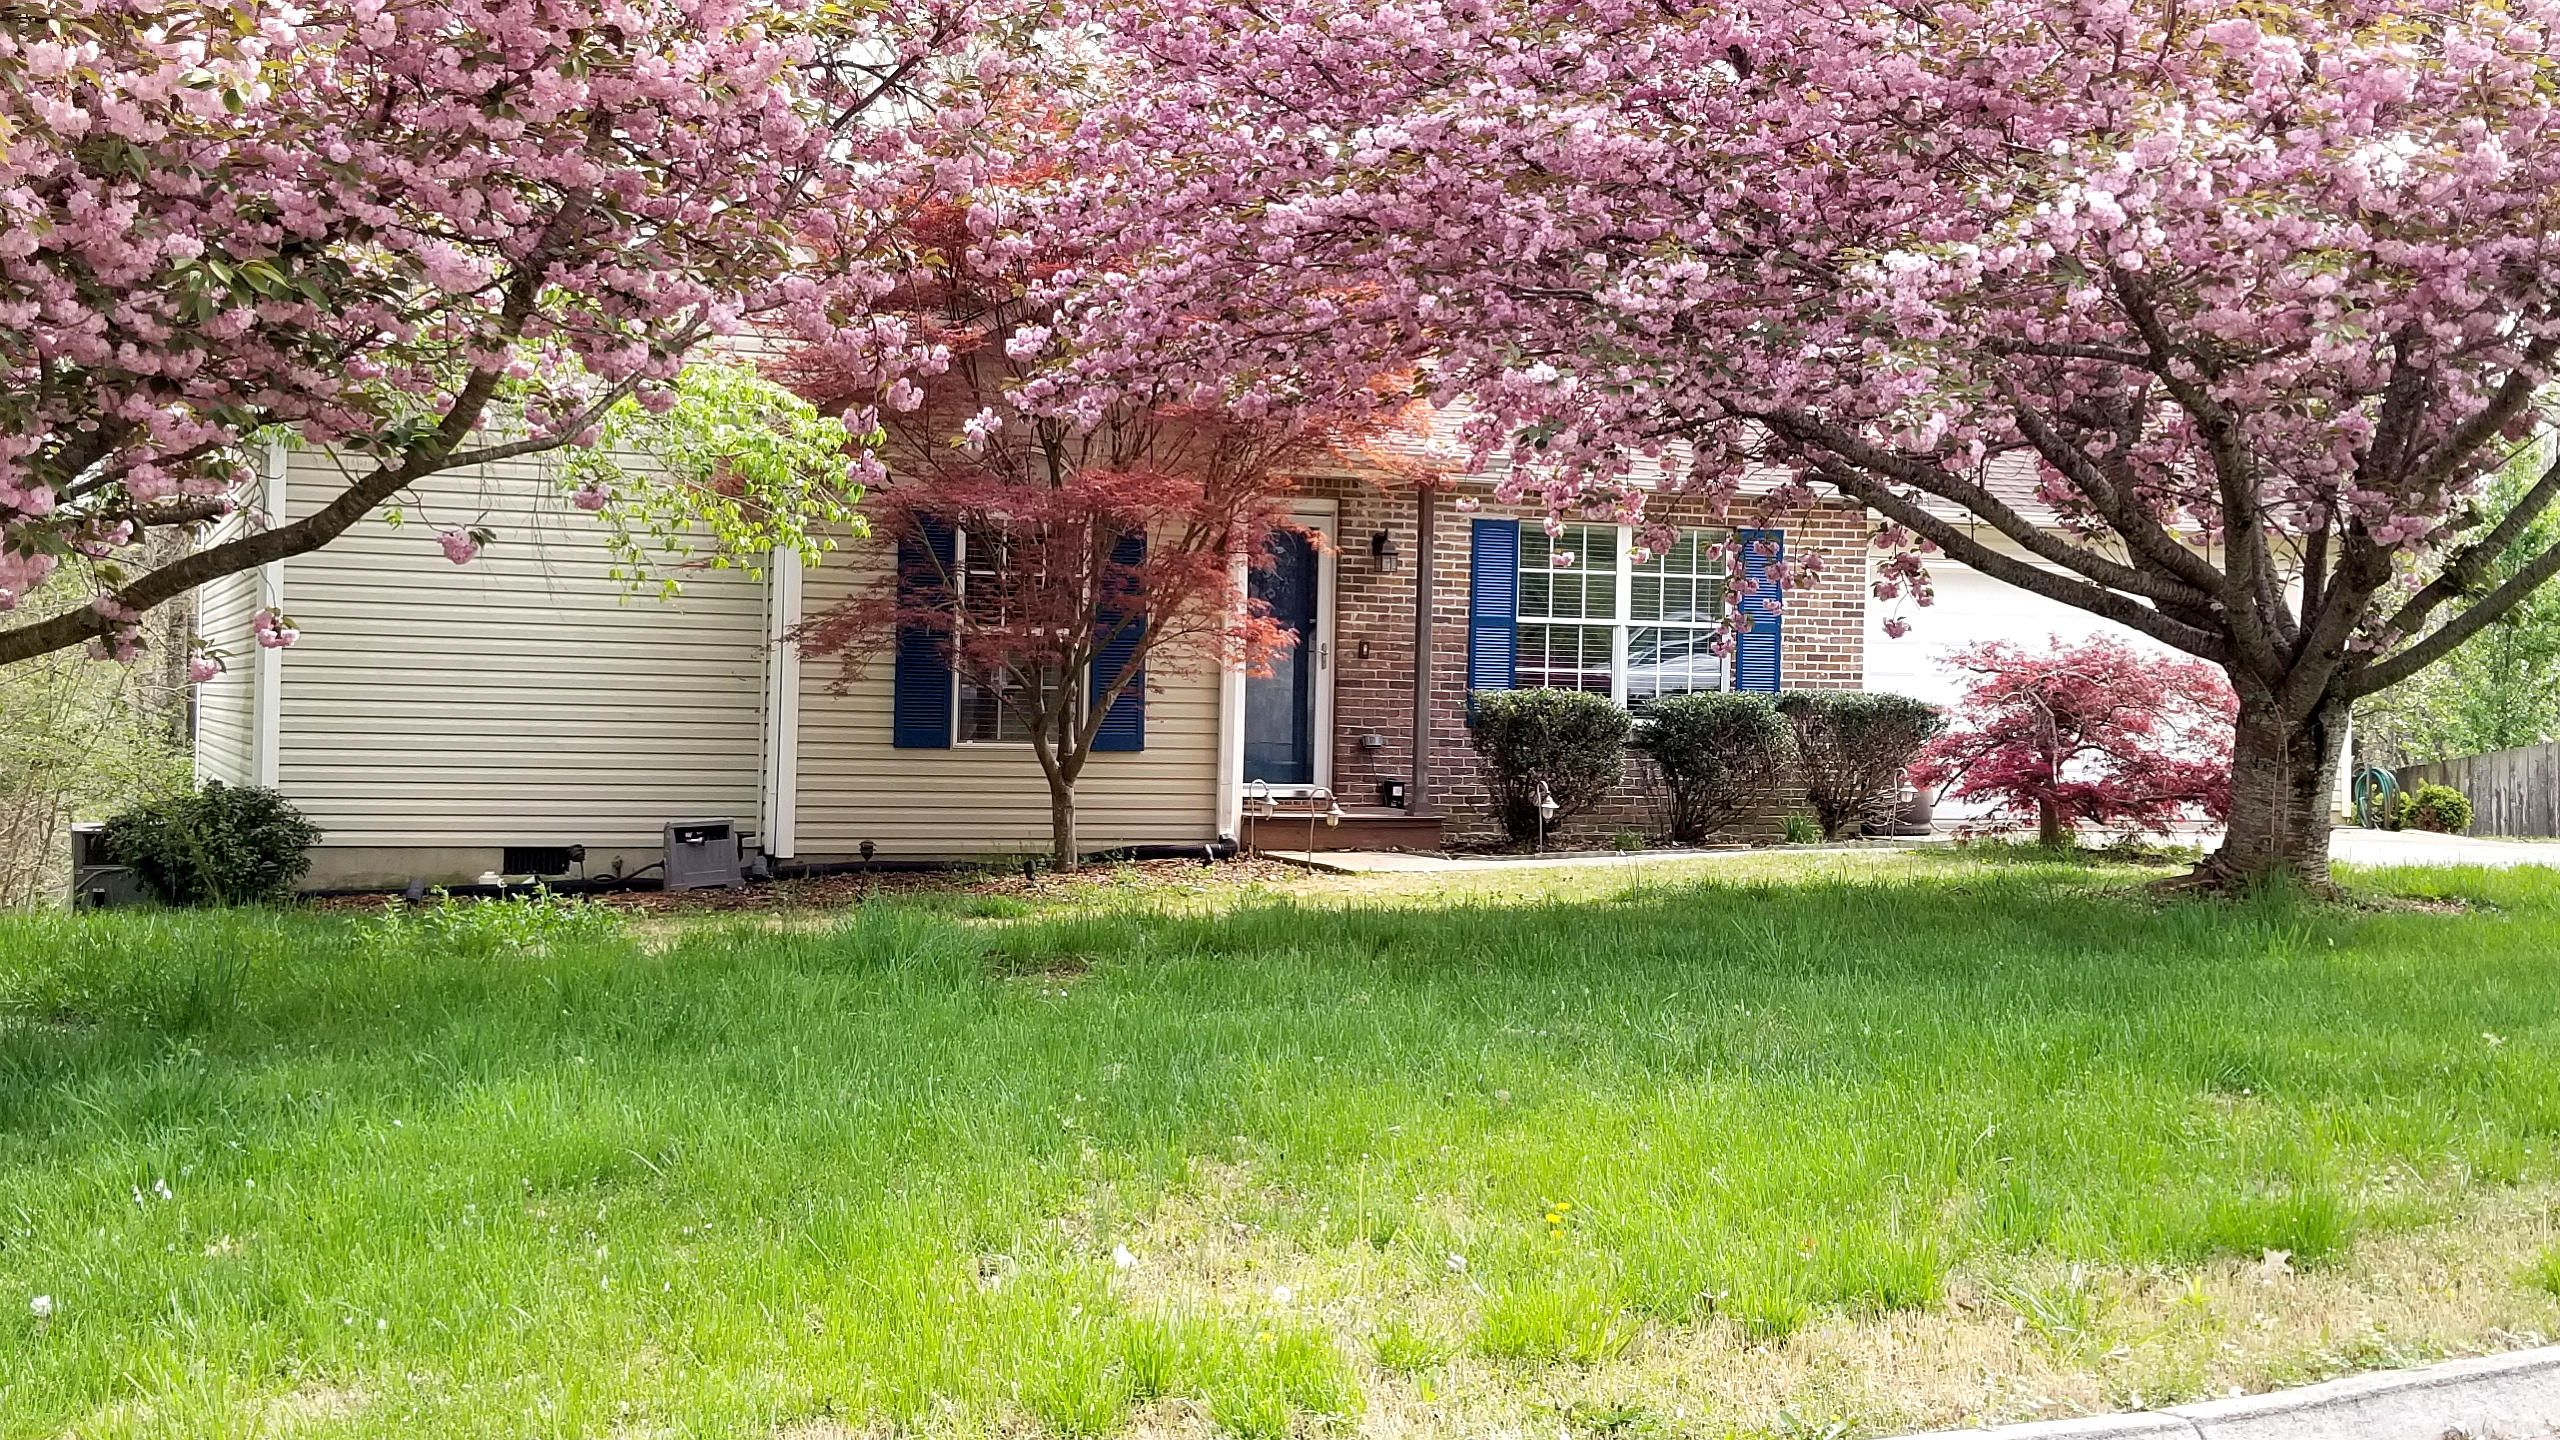 Front w/flowering trees